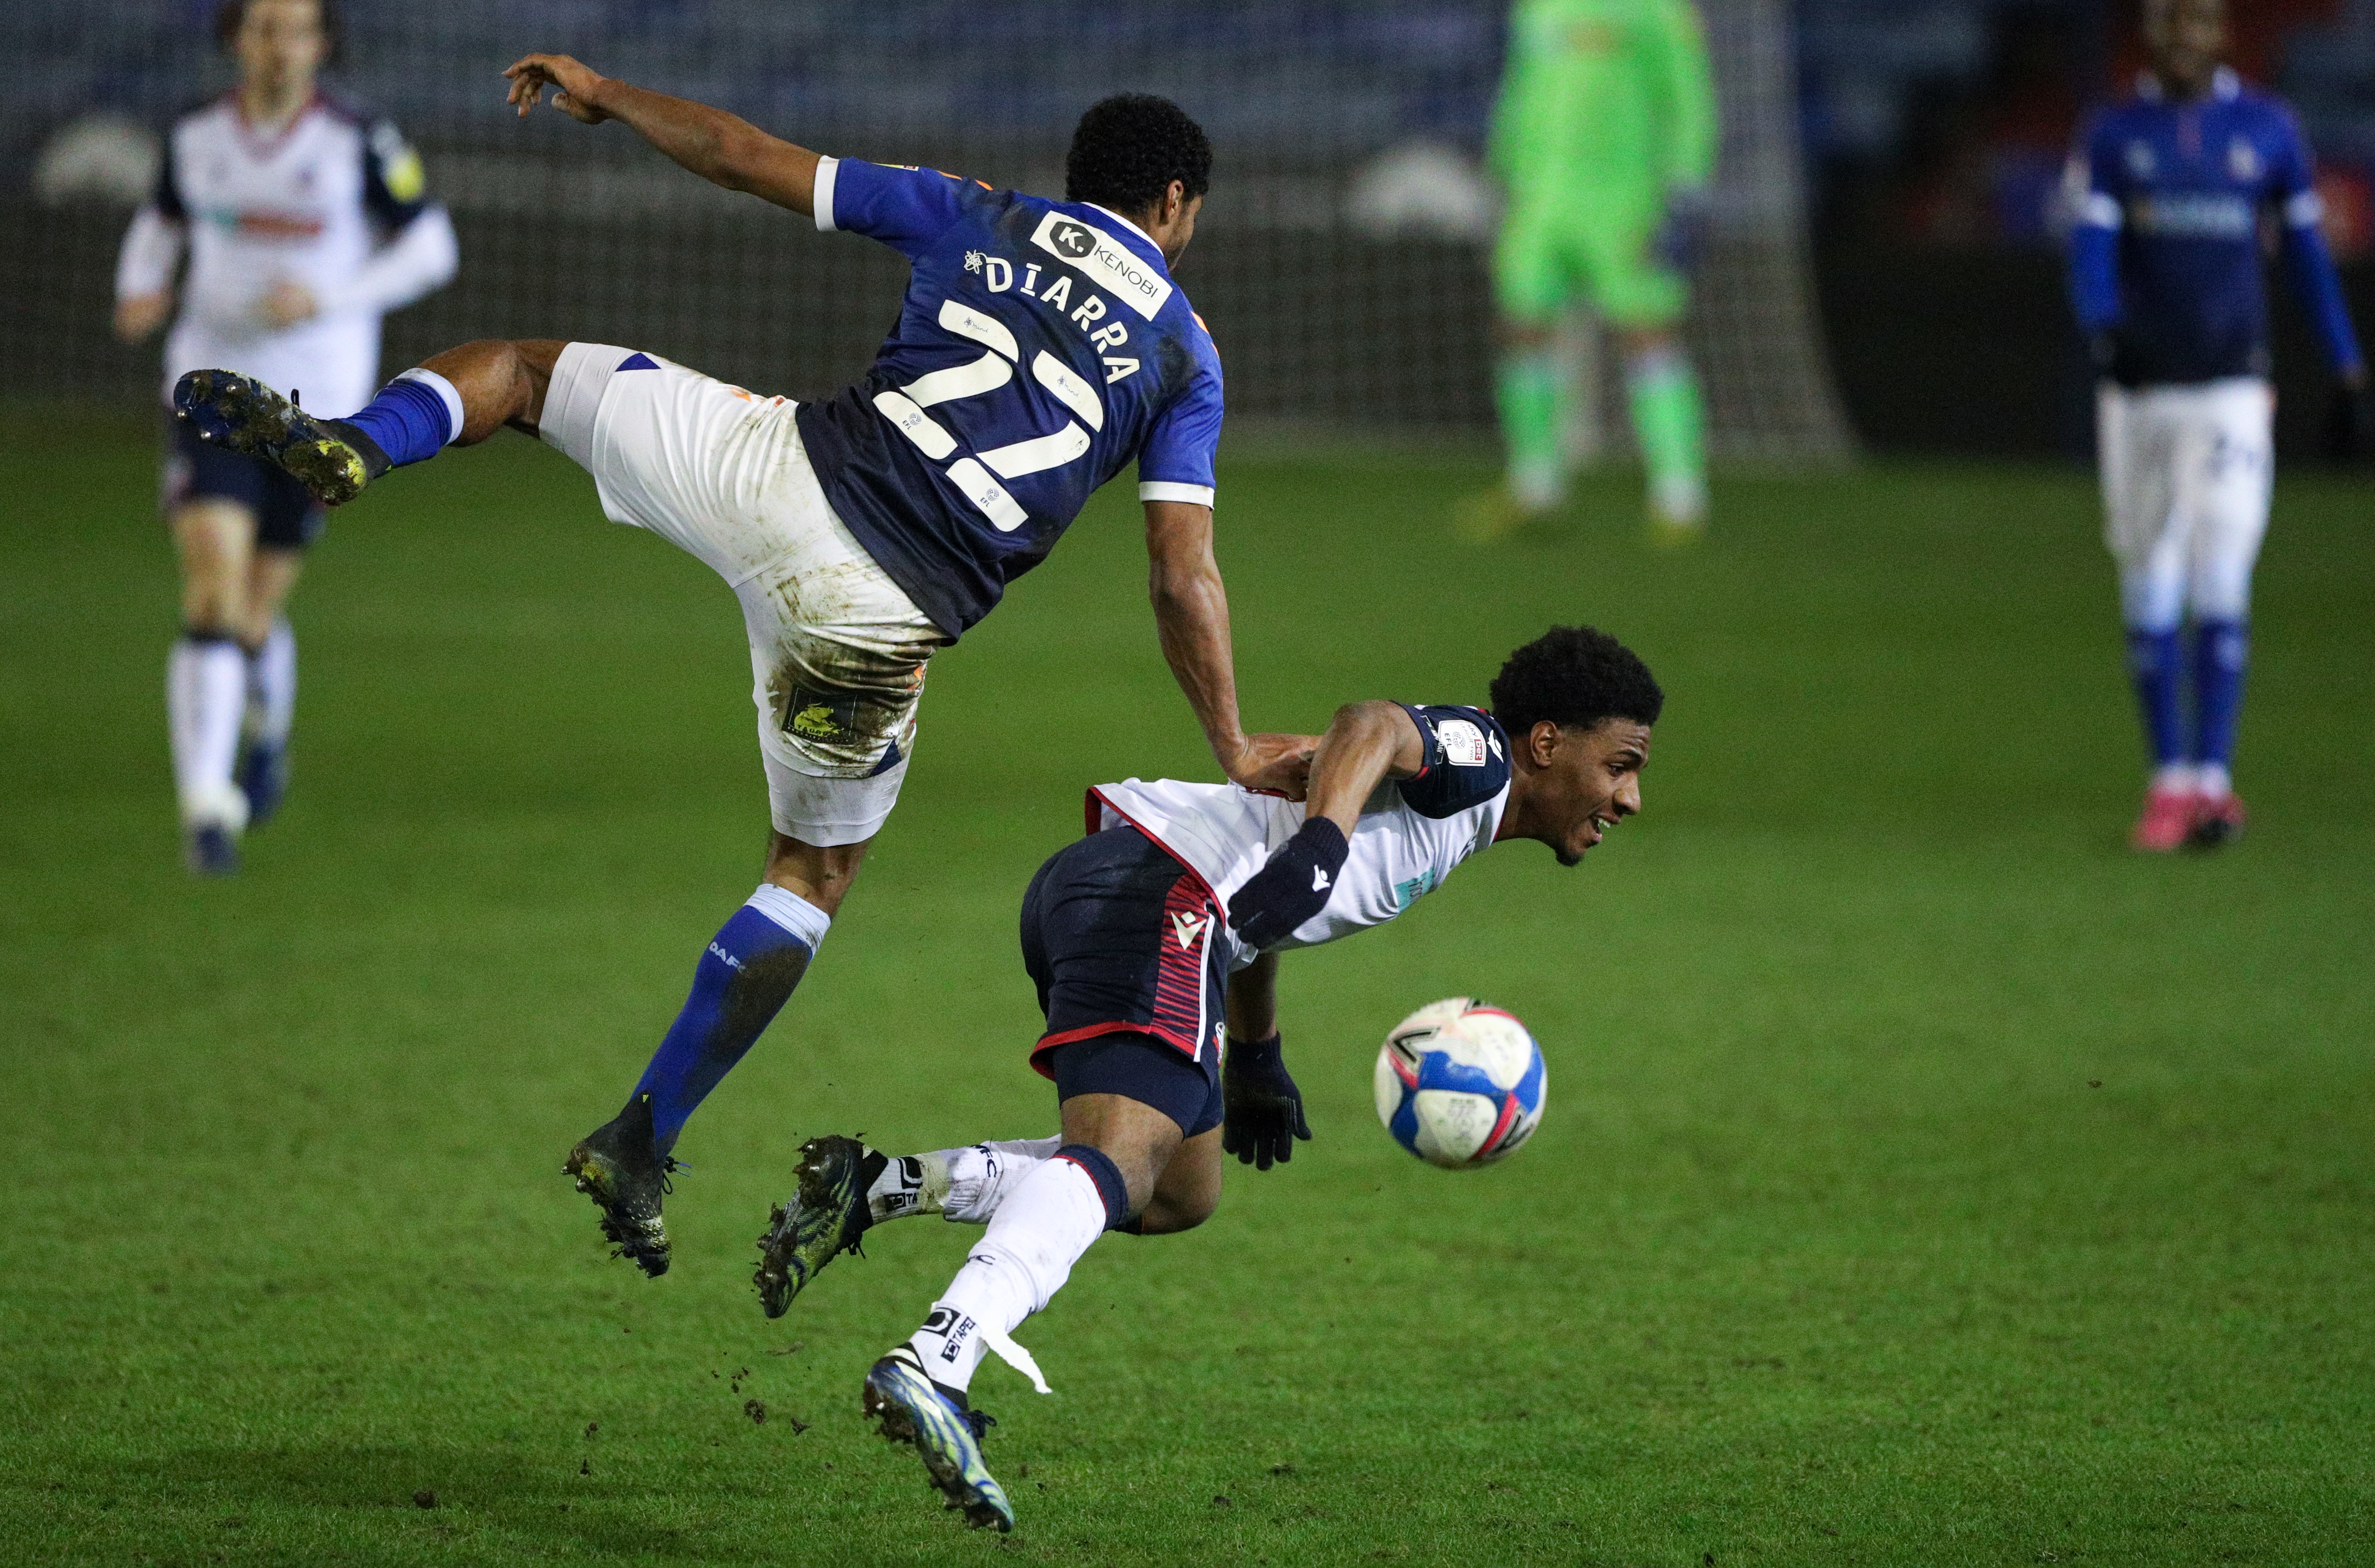 Oldham Athletic v Bolton Wanderers - Sky Bet League Two